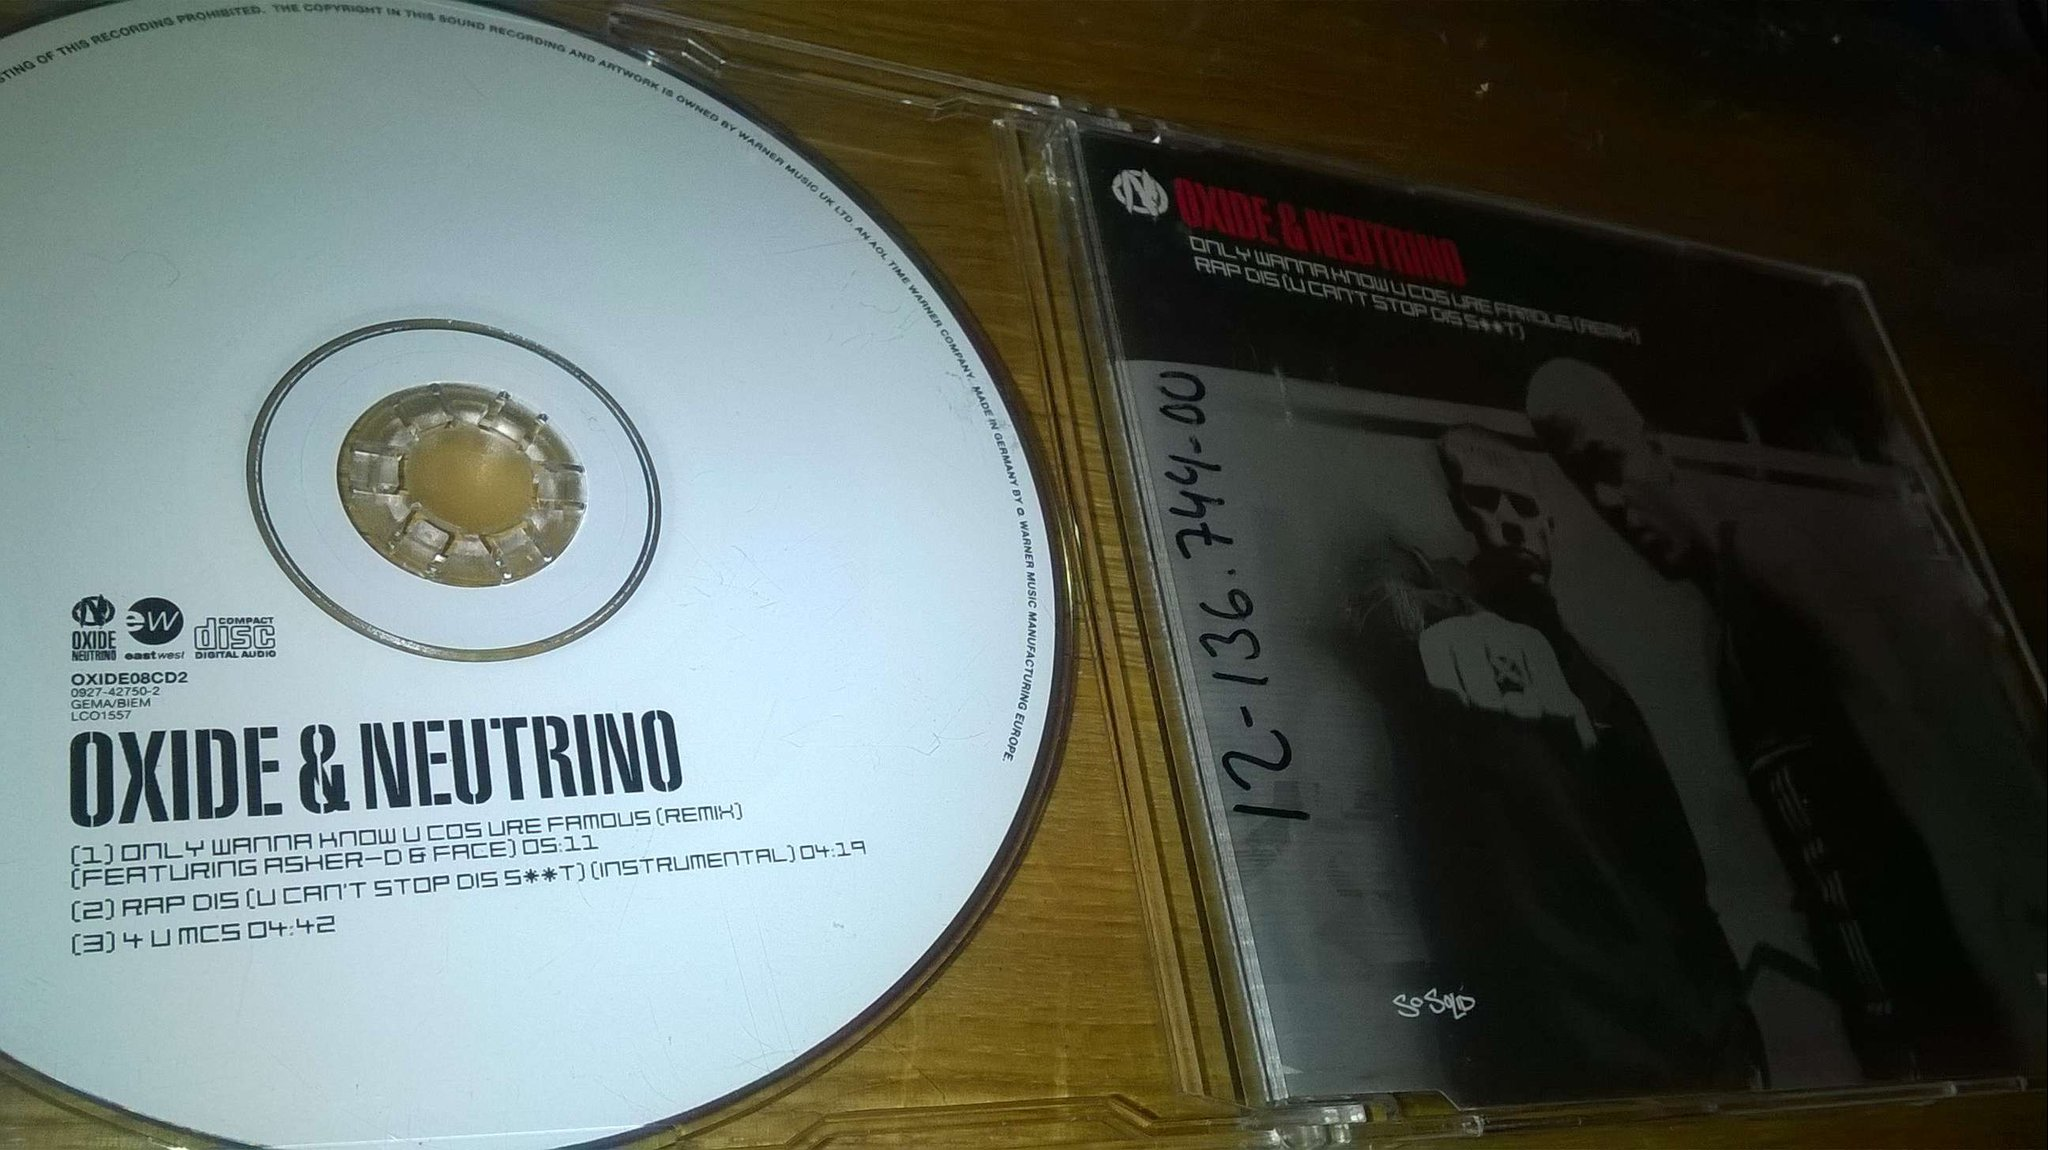 Oxide & Neutrino Only Wanna Know U Cos Ure, CD, single, rare